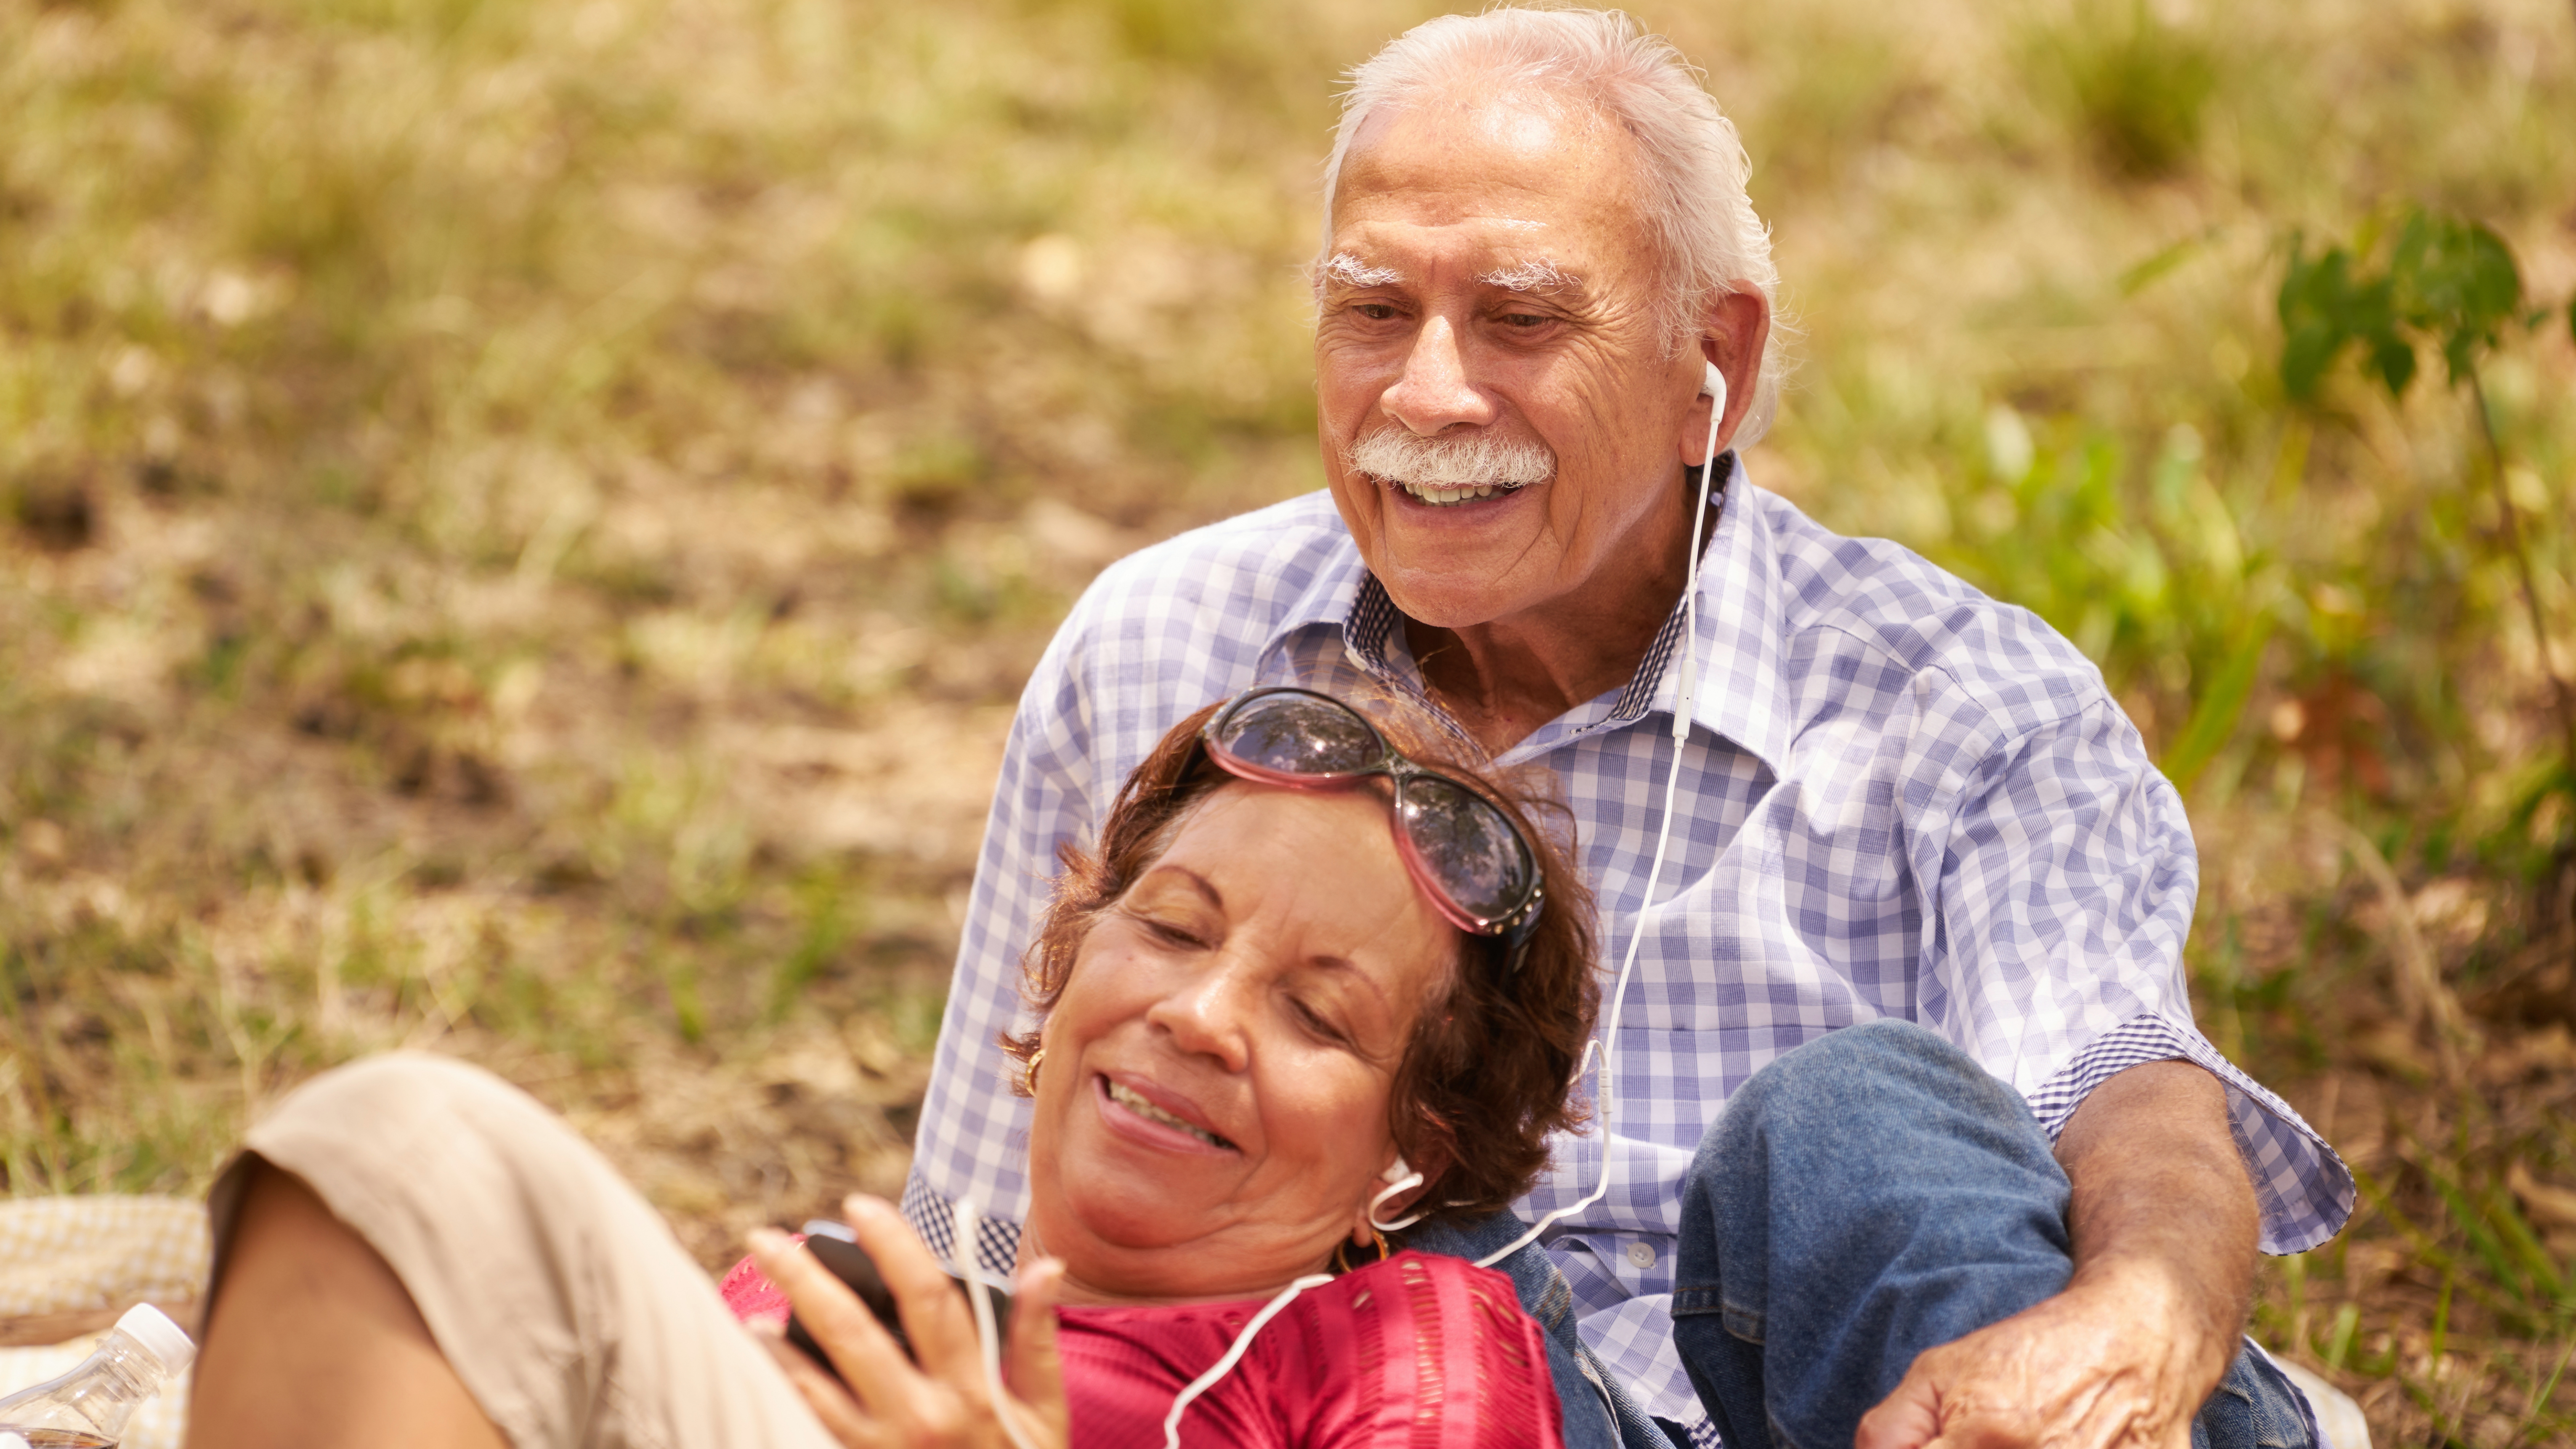 a senior couple, an elderly man and woman in park listening to music with earbuds or headphones